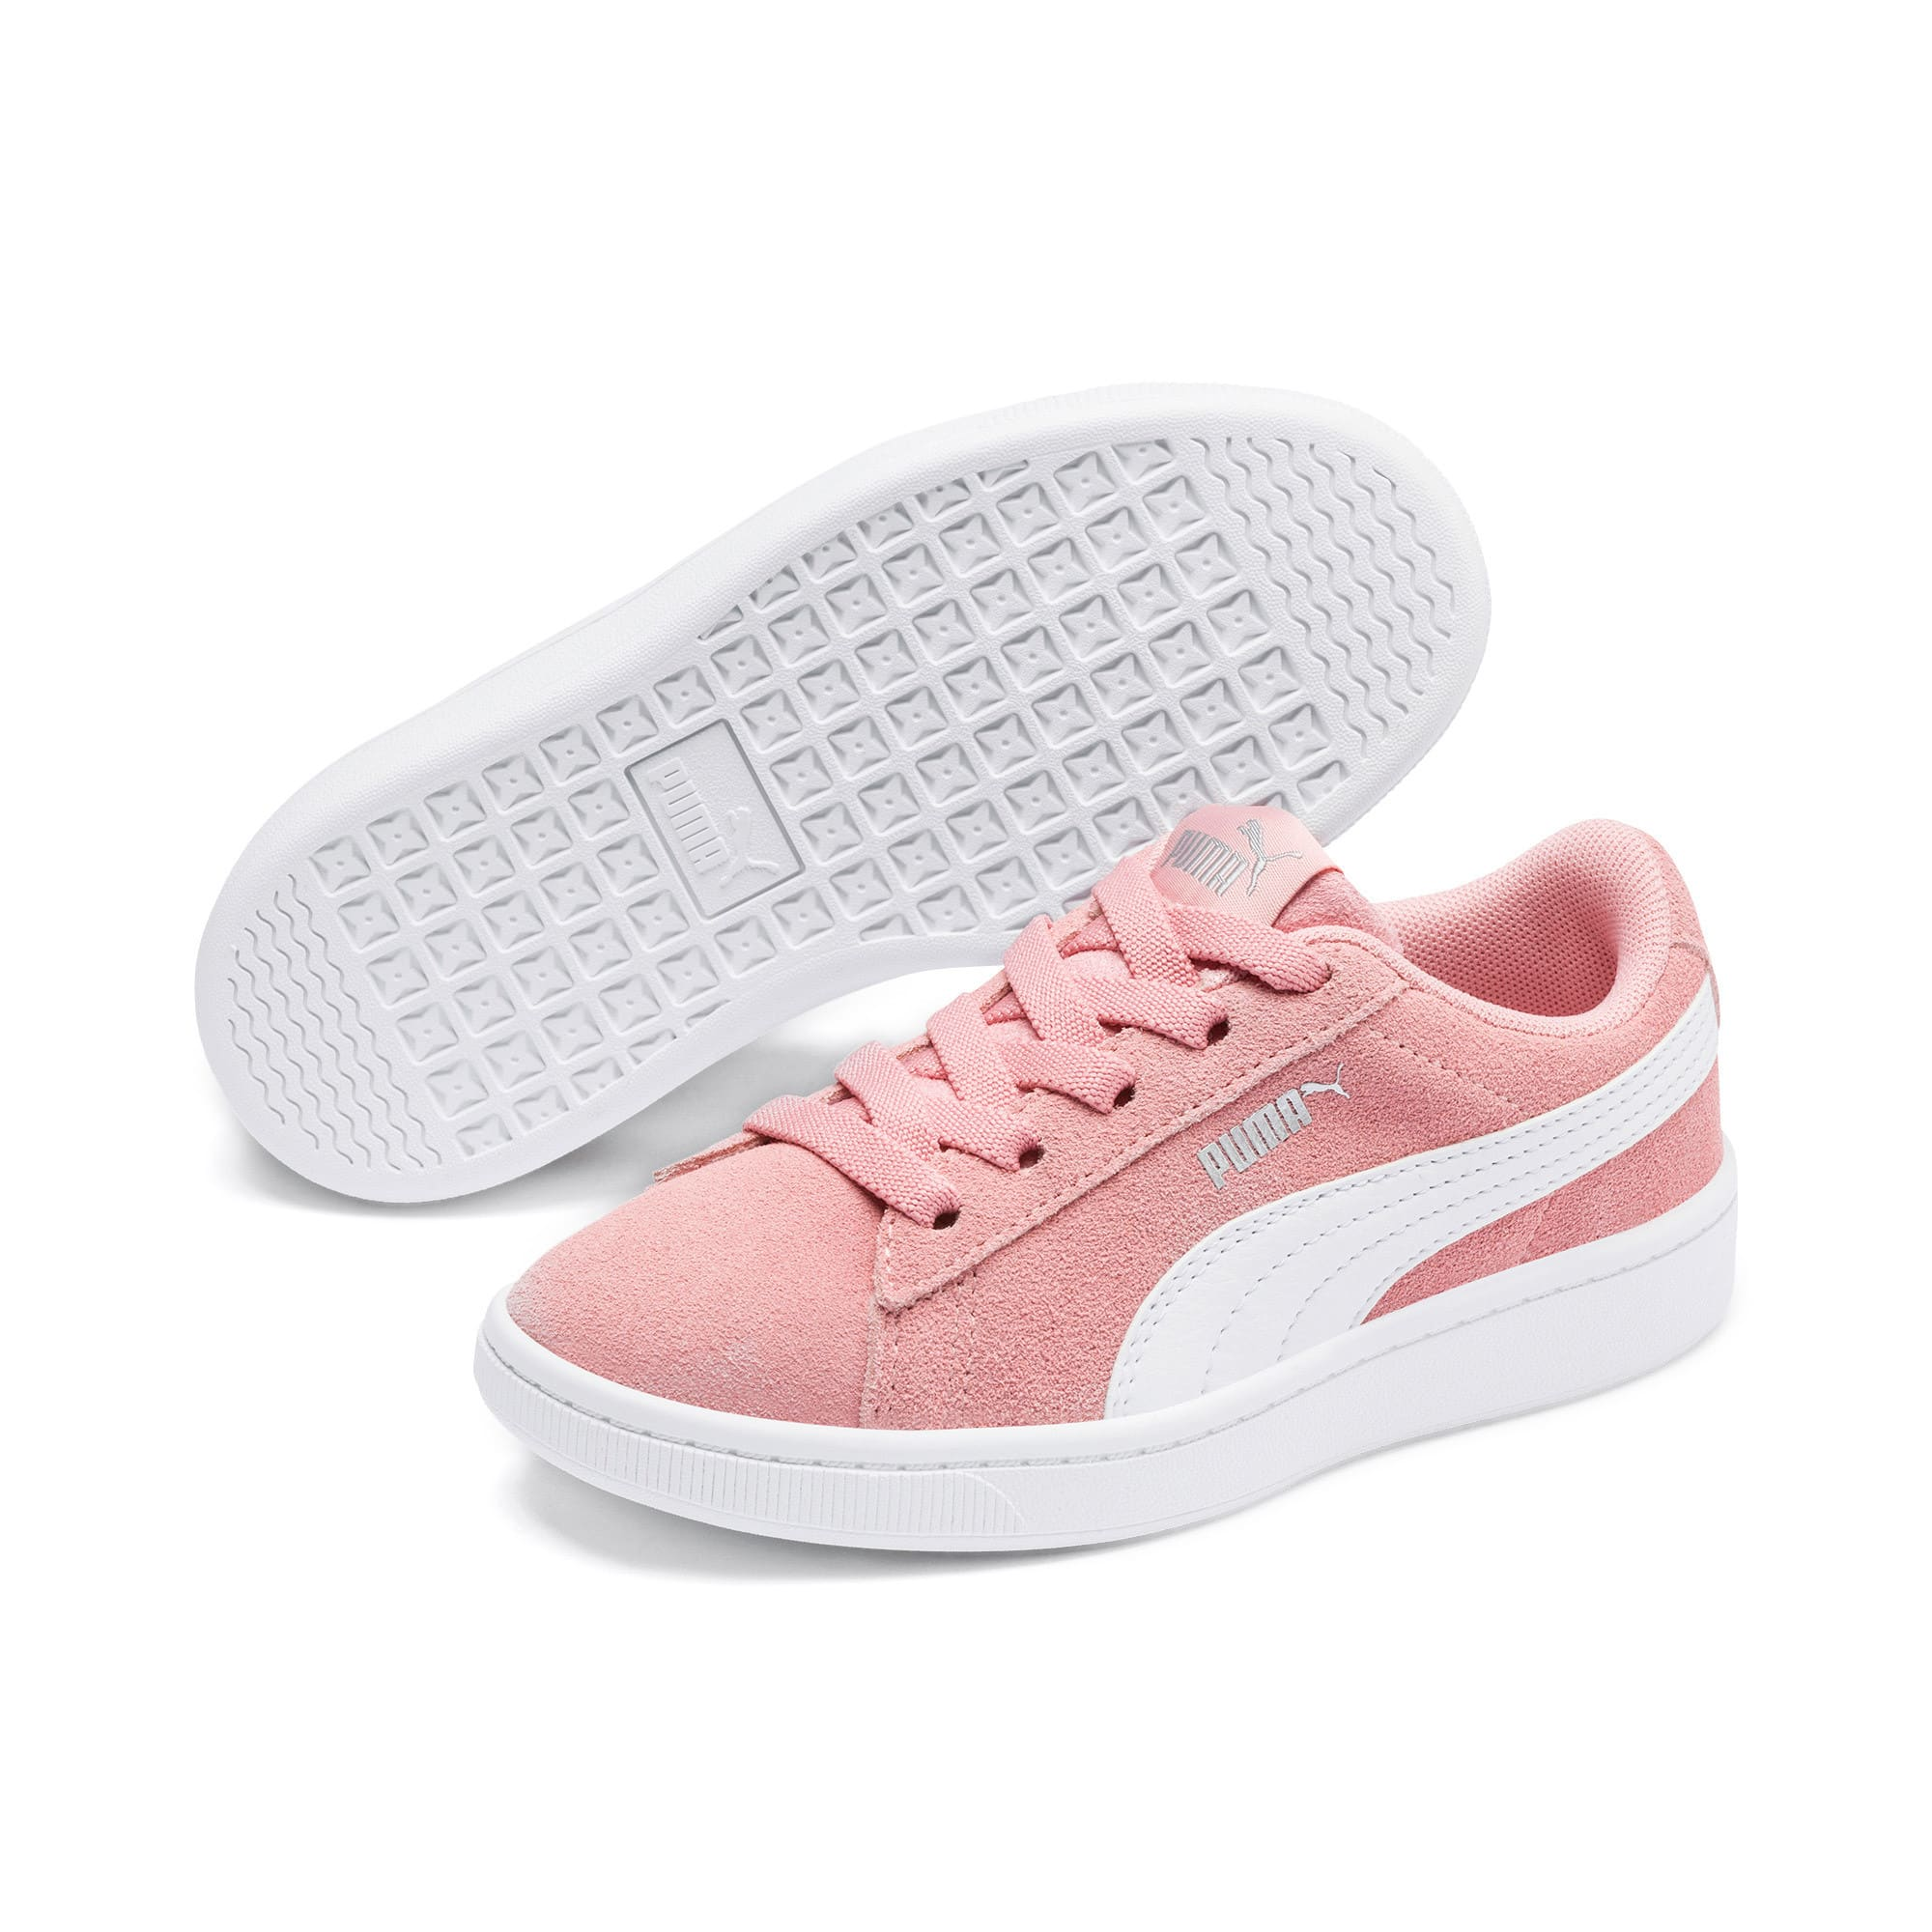 Thumbnail 2 of PUMA Vikky v2 Suede AC Sneakers PS, Bridal Rose-White-Silver, medium